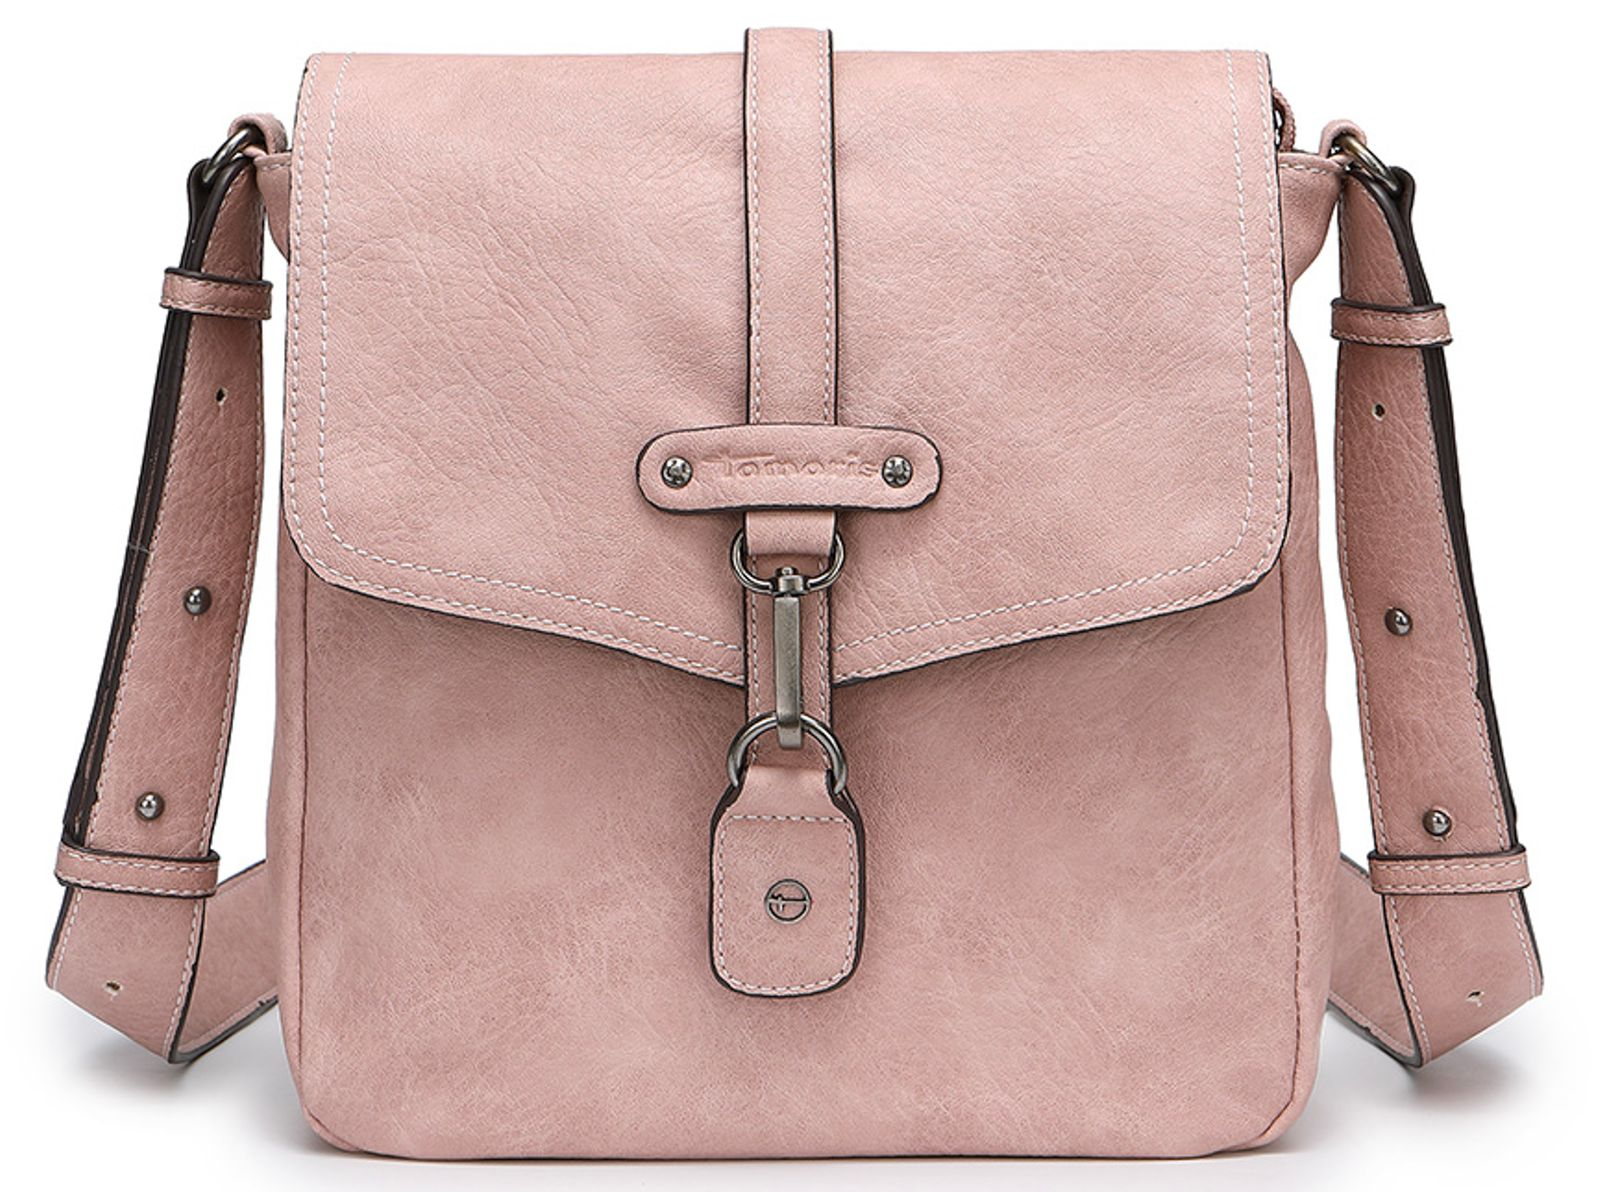 Tamaris Bernadette Crossbody Bag Rose